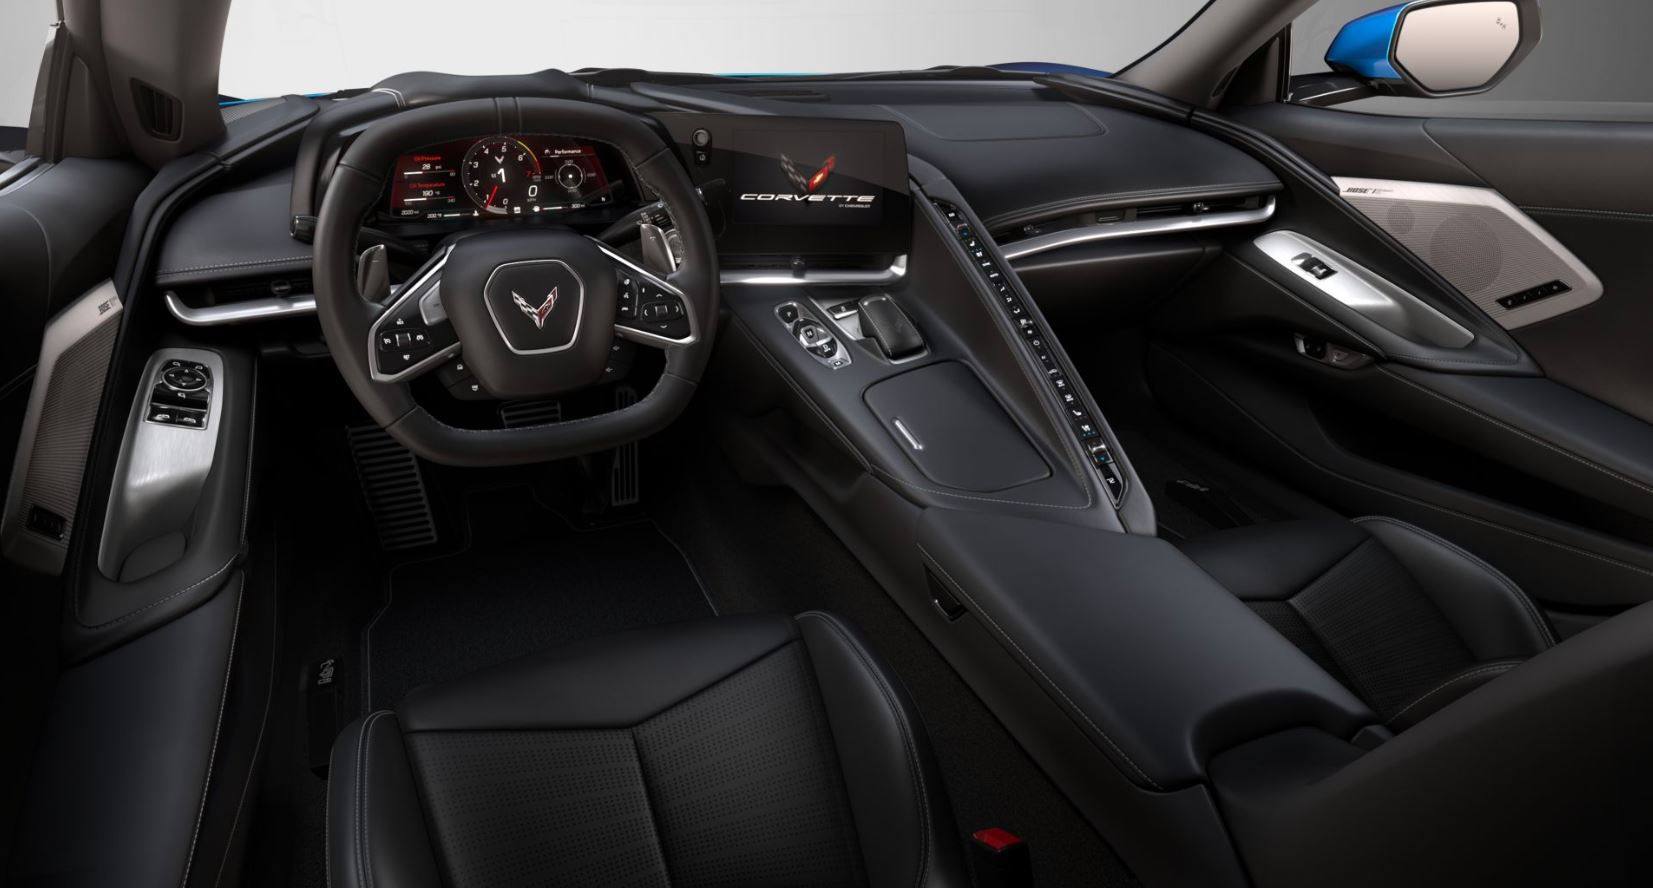 The interior of the 2020 Chevrolet Corvette C8 Stingray. Note the large screens and long wall of buttons on the center console.